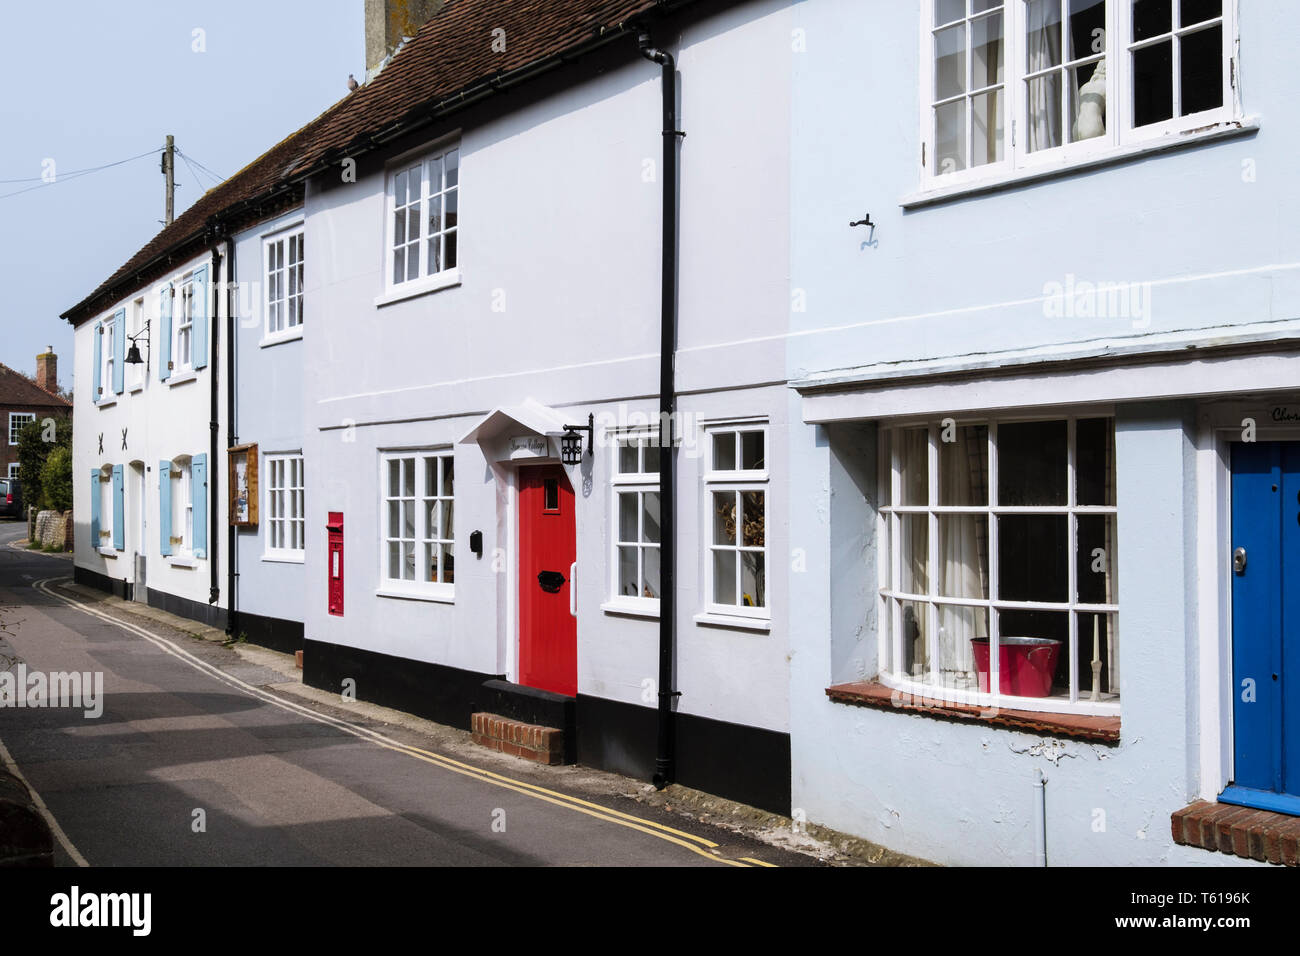 Old houses with flood defenses at front door on narrow street close to seafront. Bosham, Chichester, West Sussex, England, UK, Britain Stock Photo